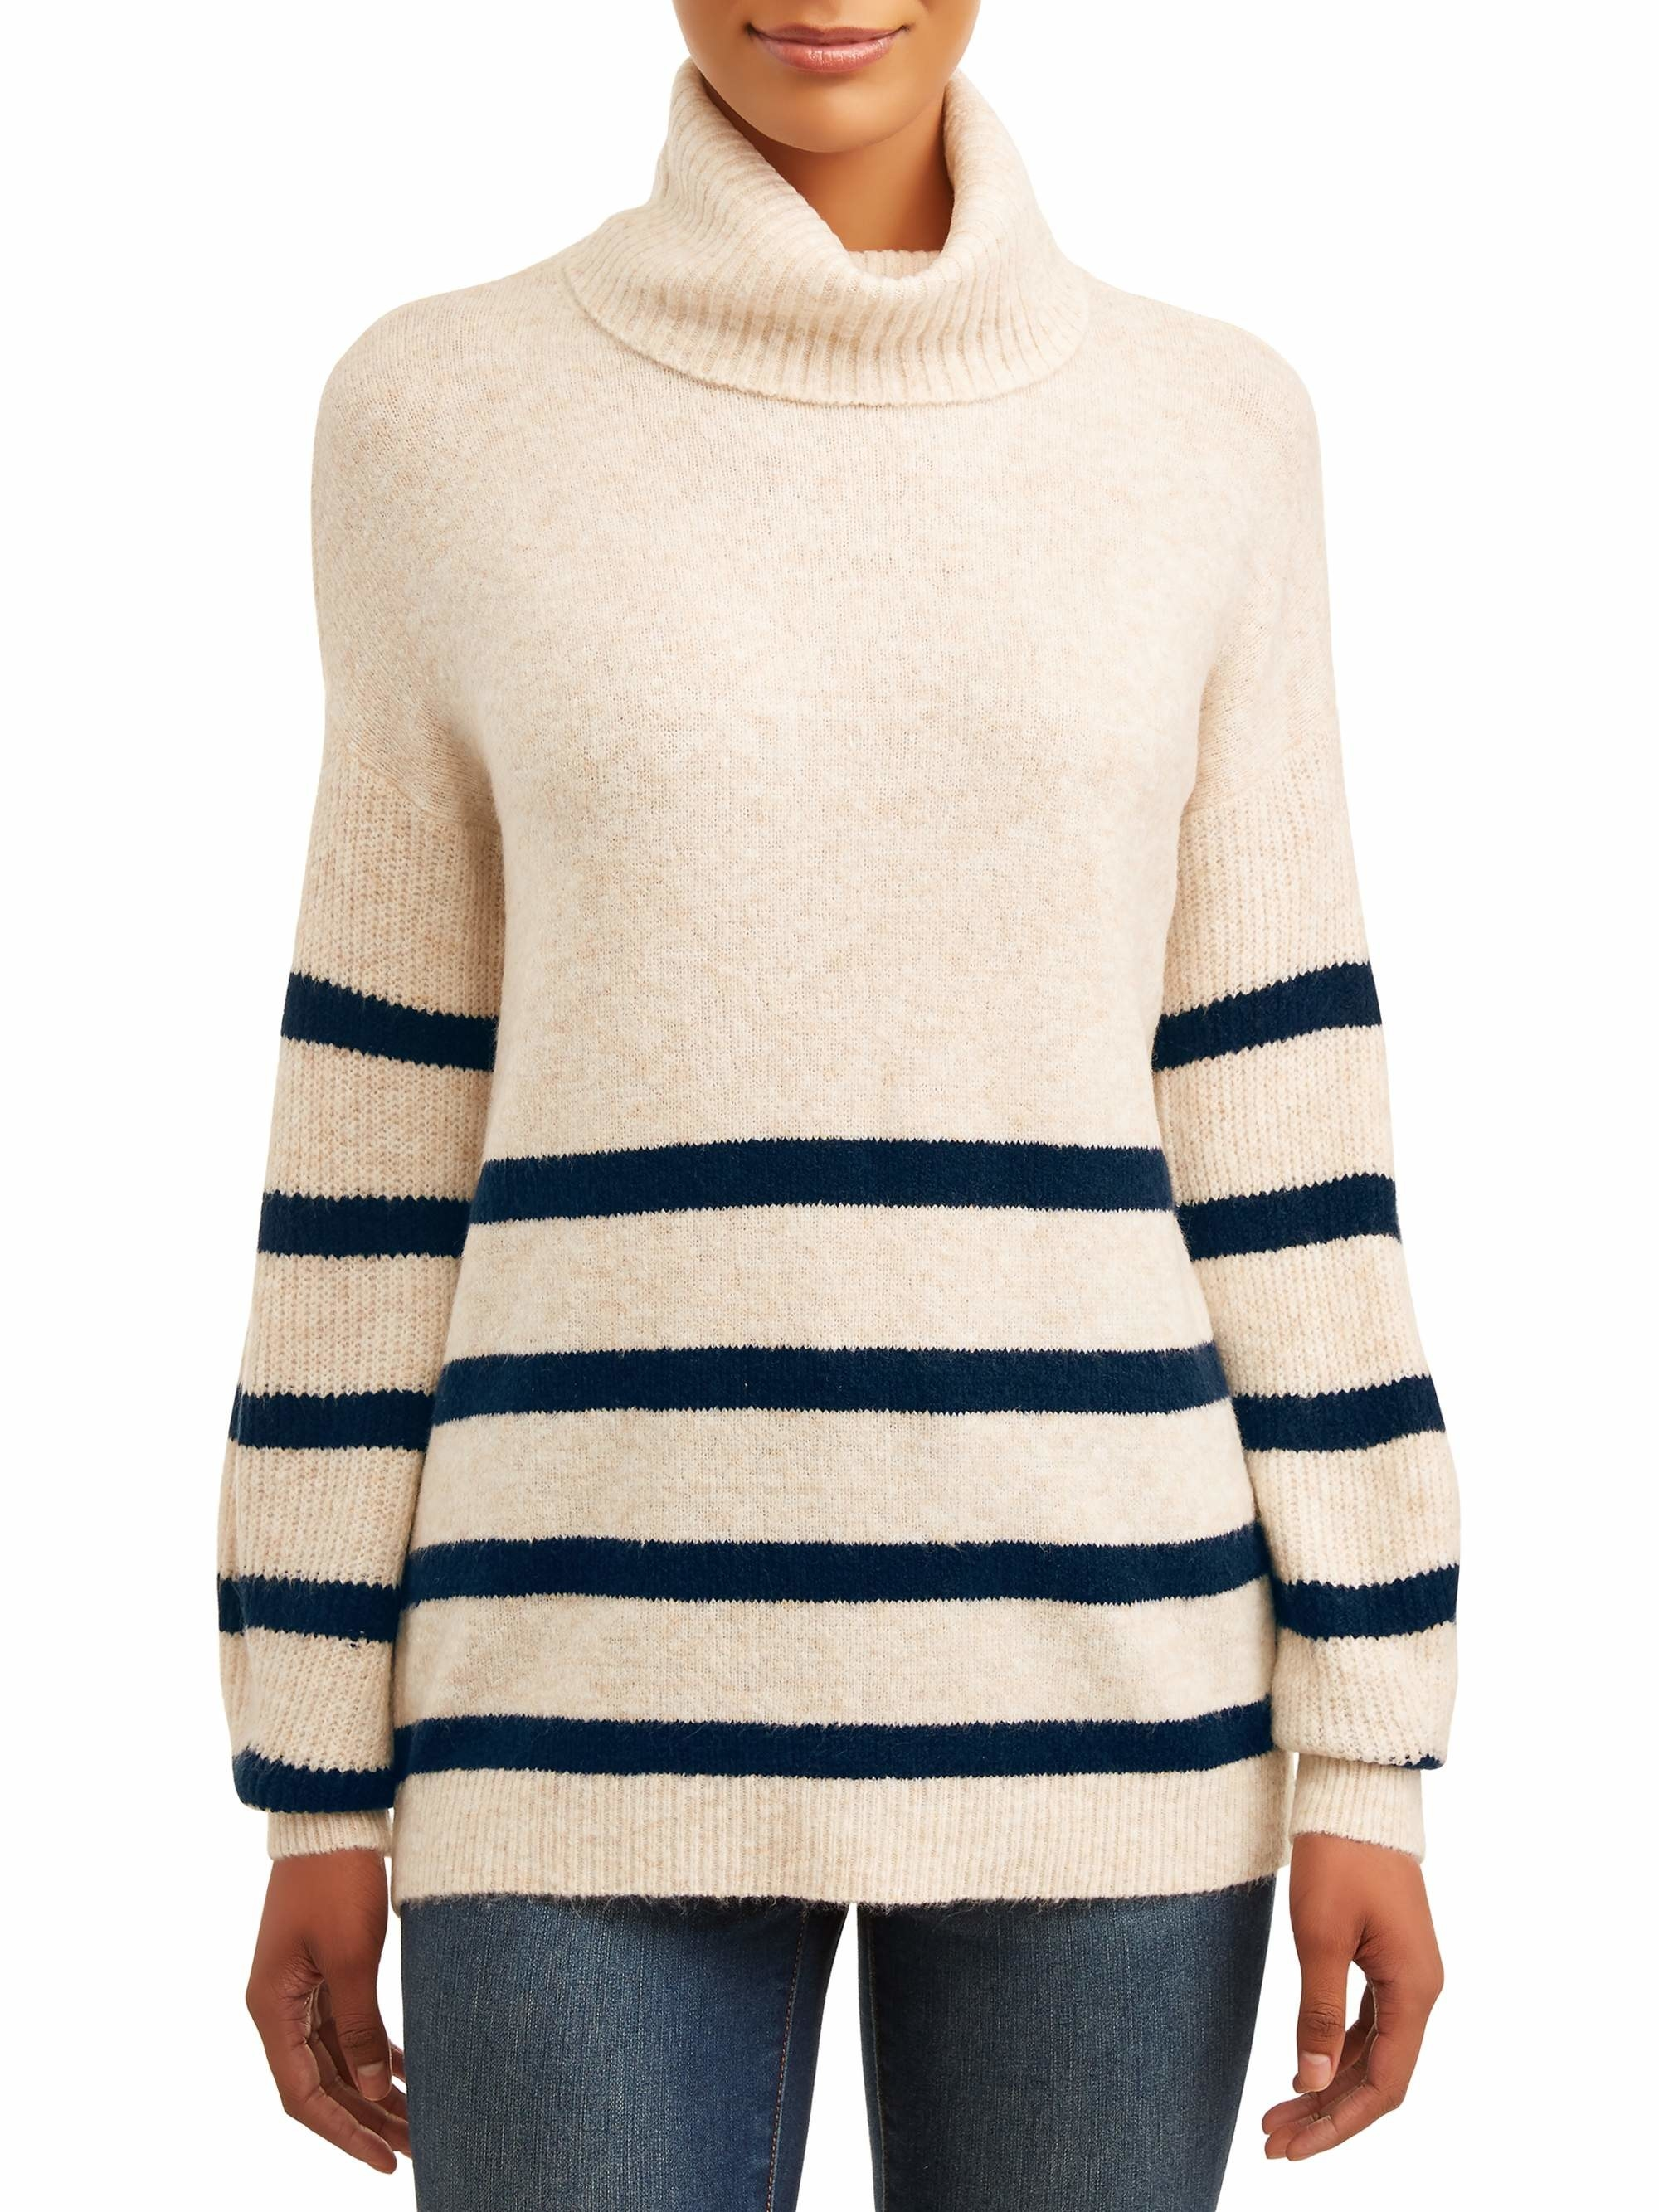 An oatmeal heather sweater with blue horizontal stripes and a turtle neck